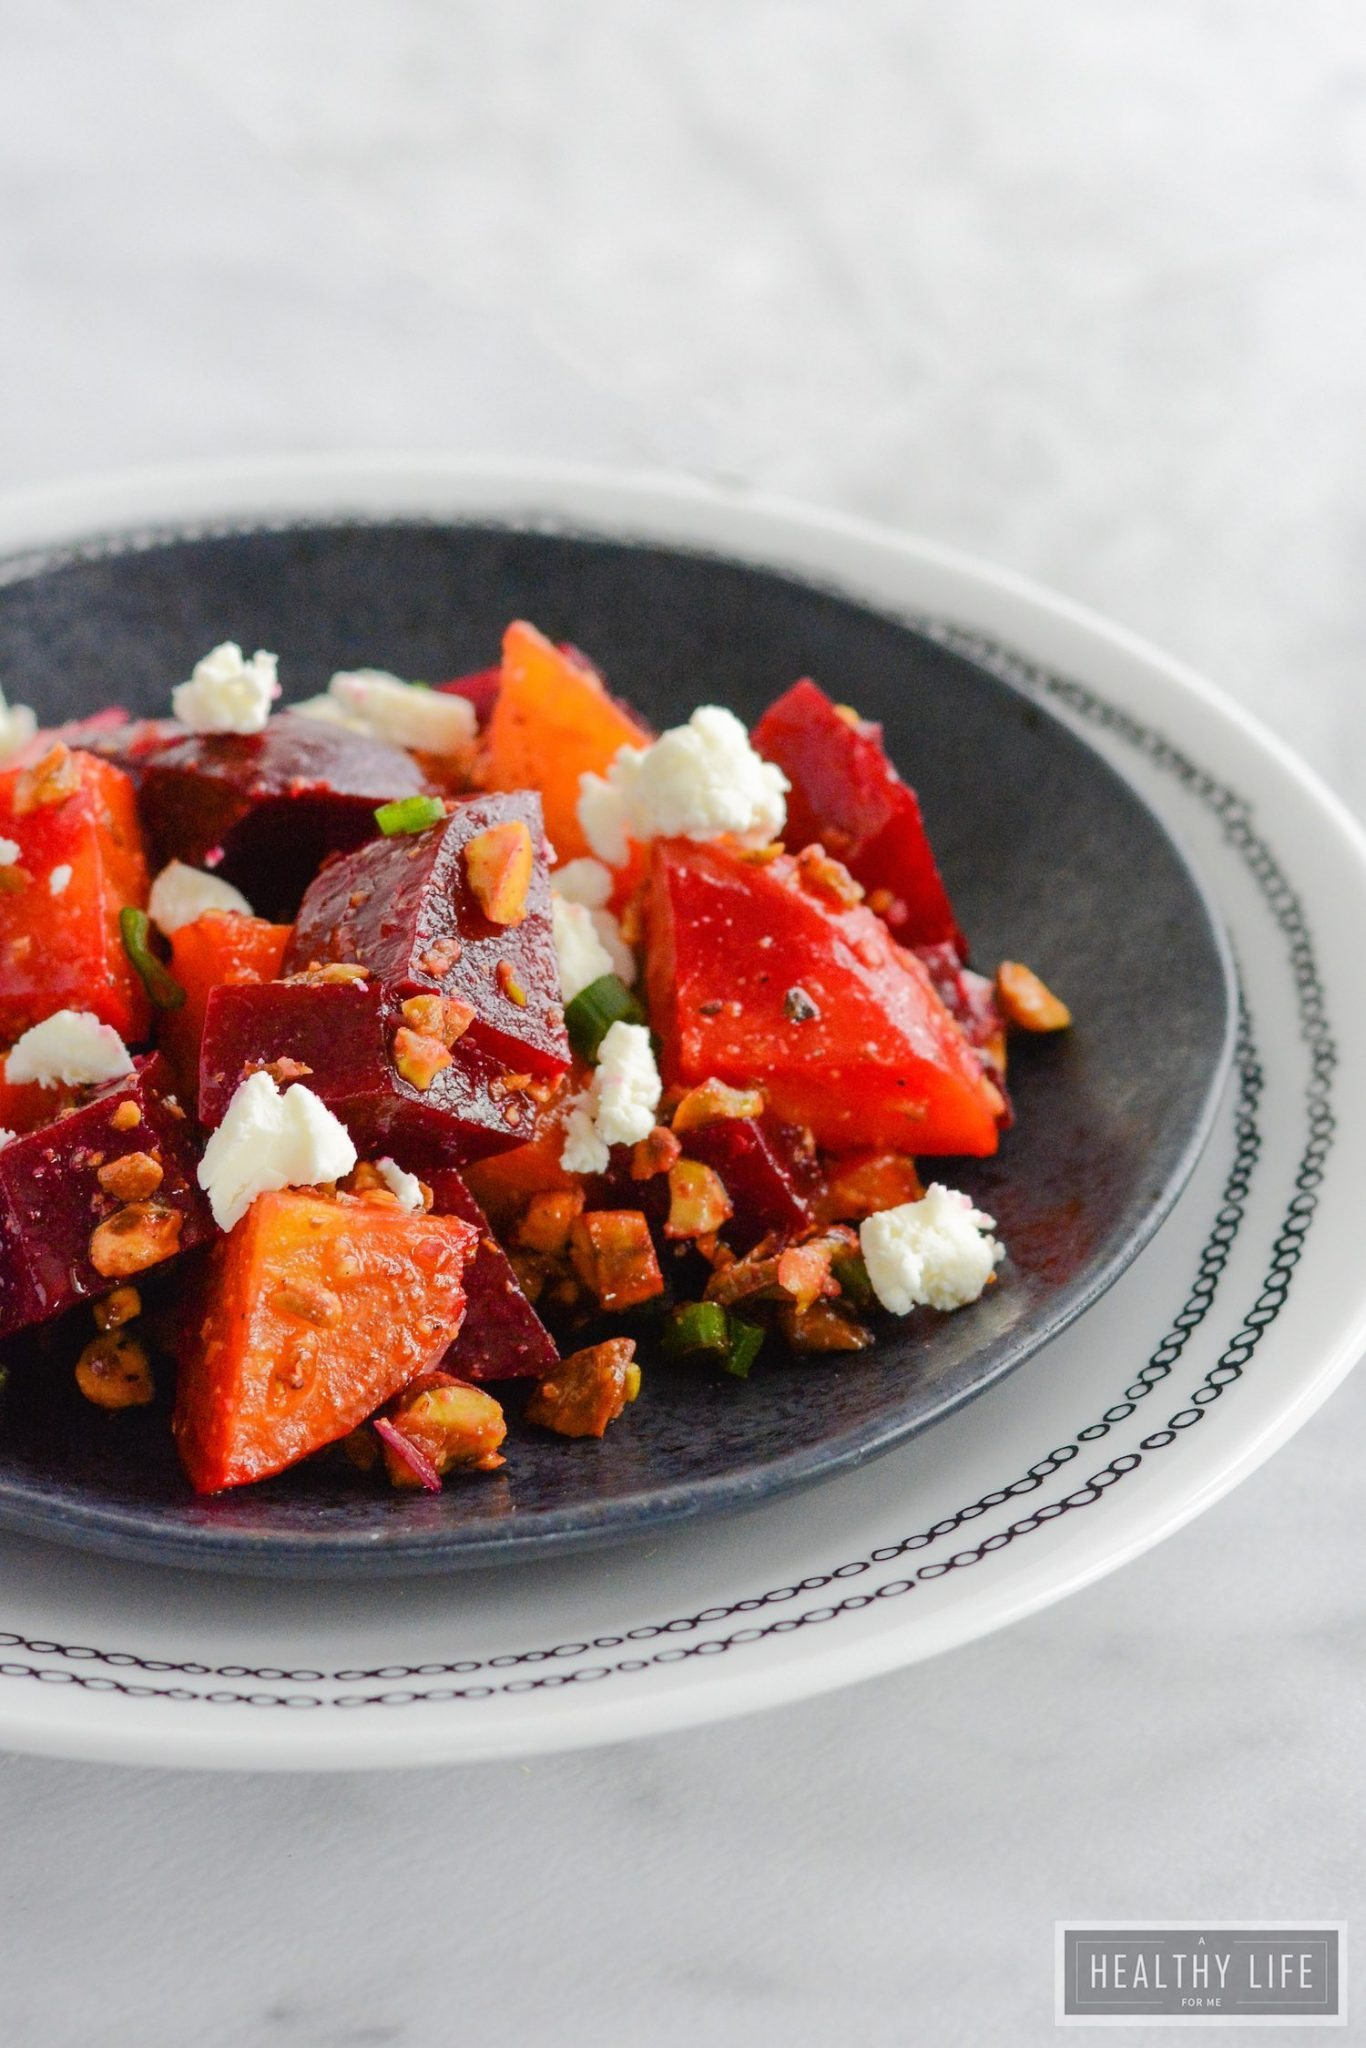 Beets Pistachio and Goat Cheese Salad is a delicious winter salad ...